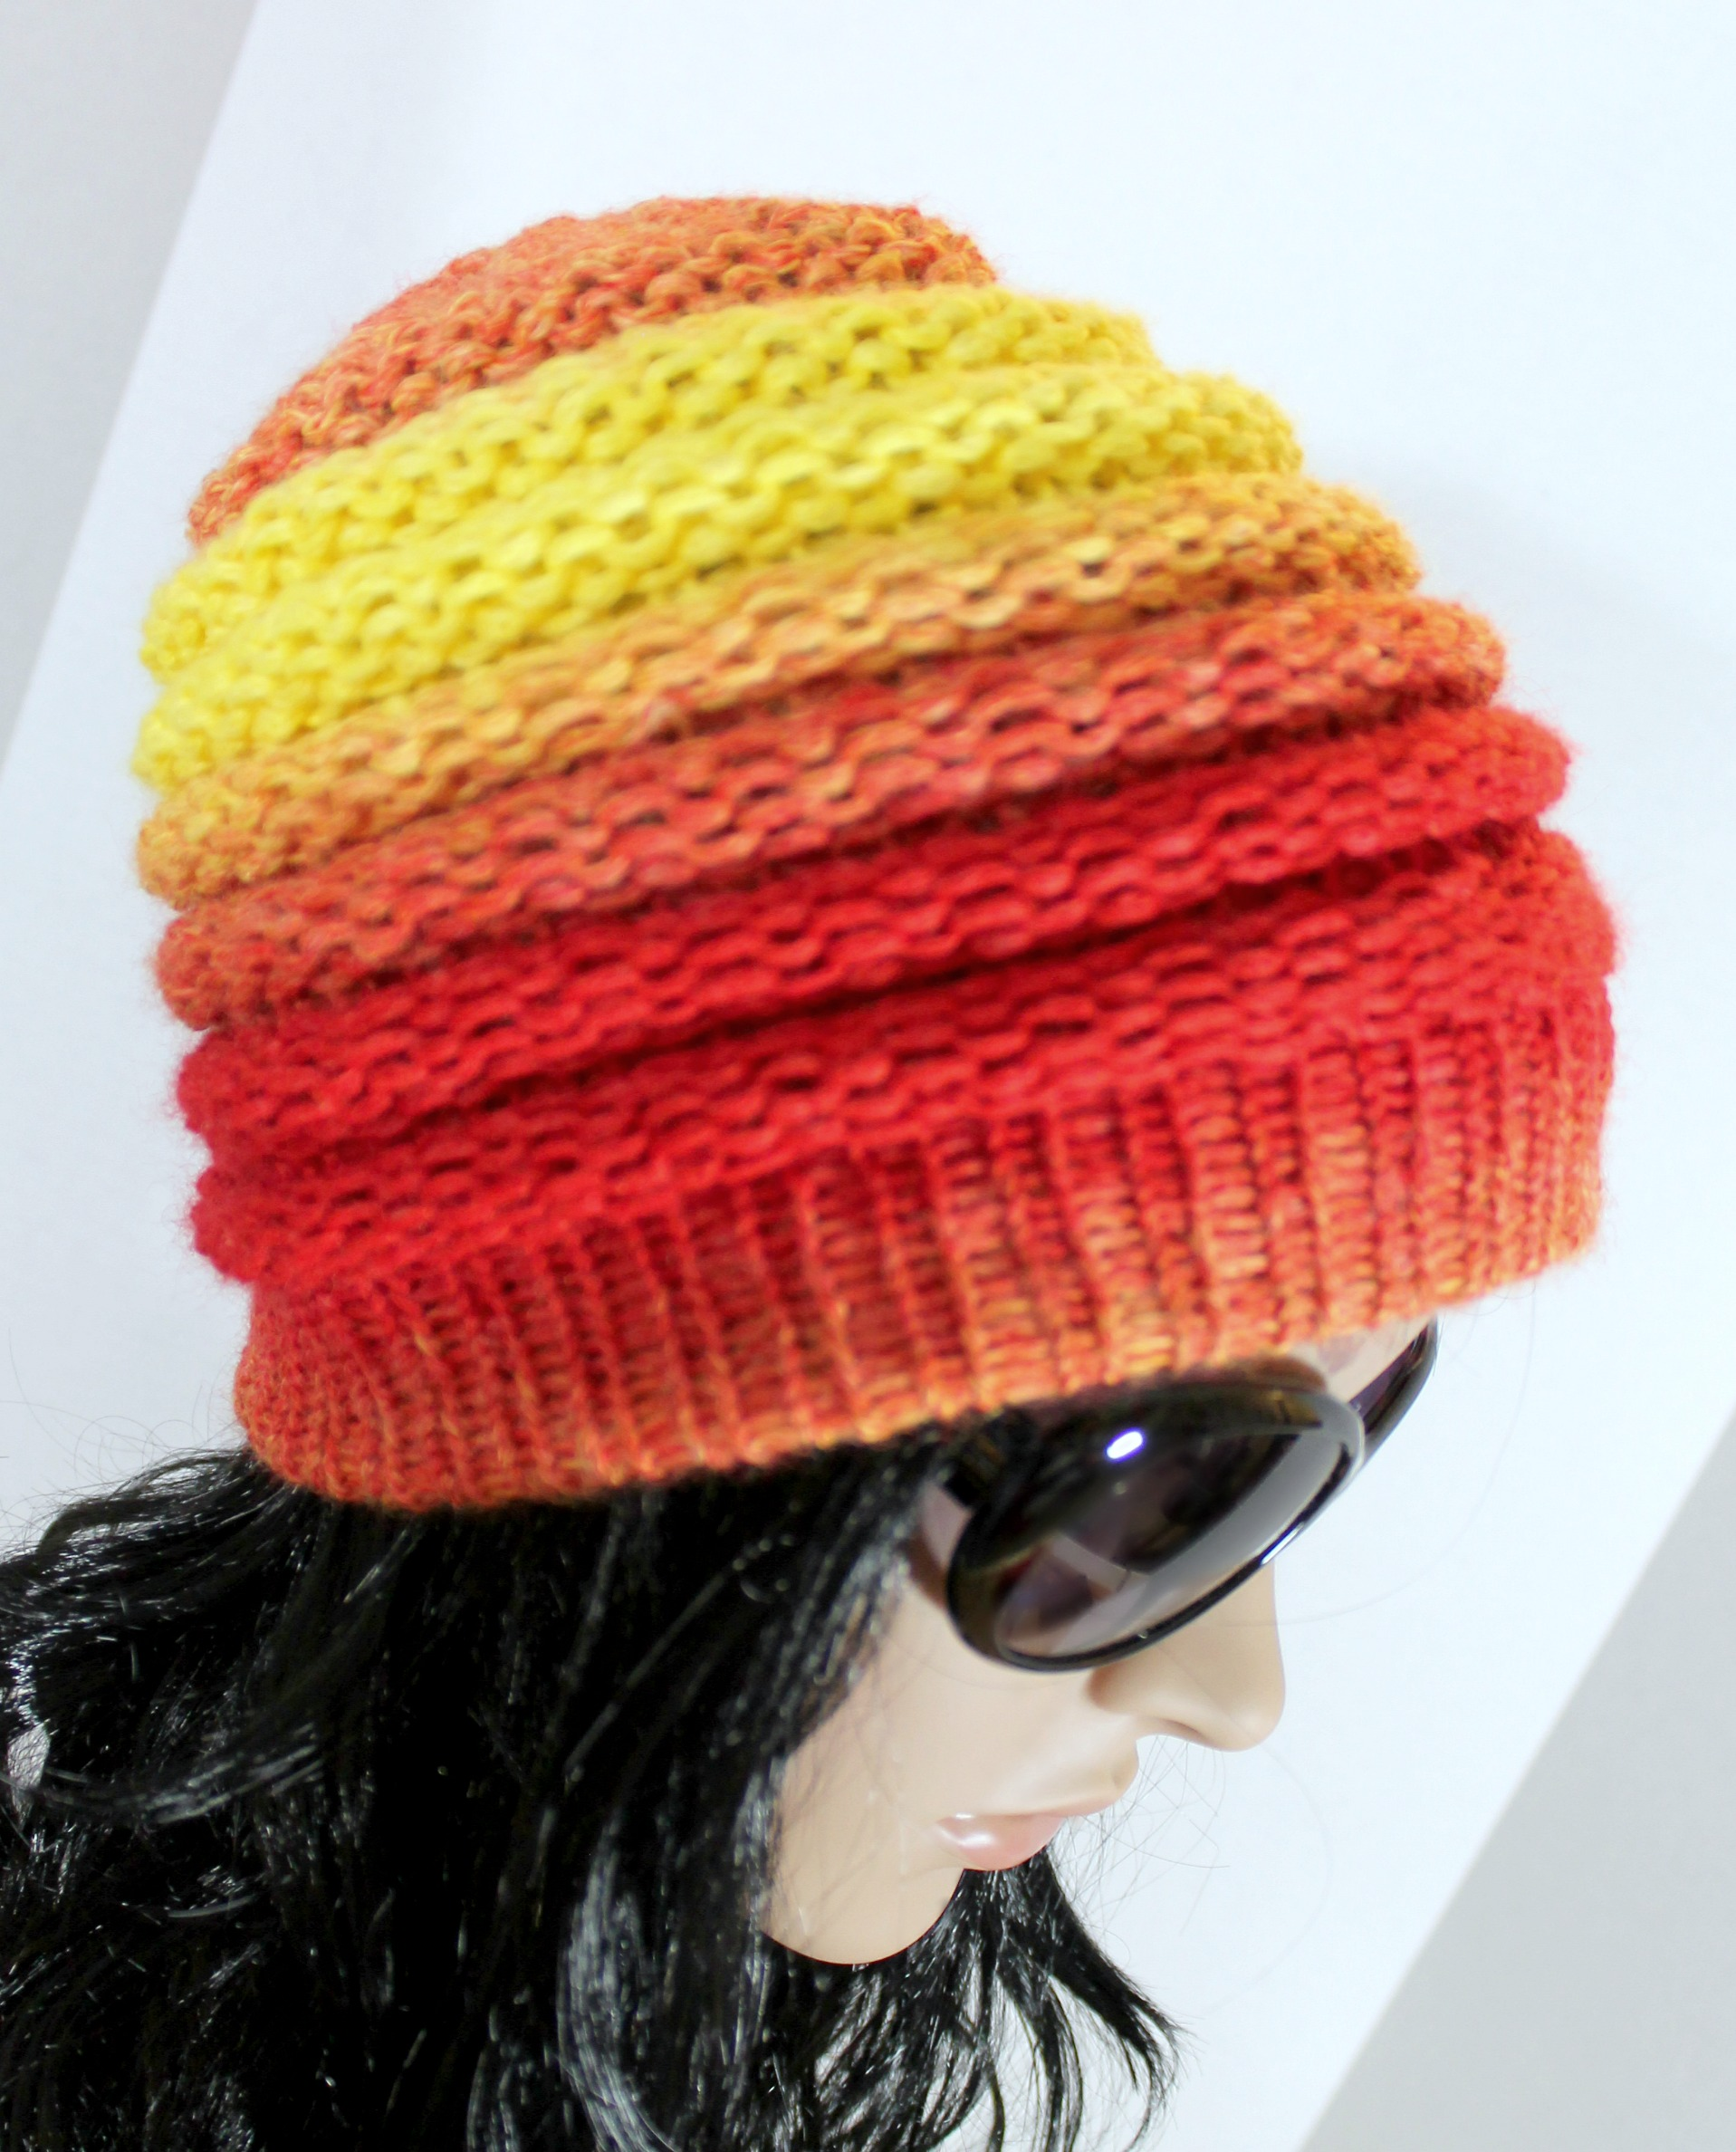 Loom hat patterns 65 free patterns loomahat ombre beanie hat pattern bankloansurffo Choice Image